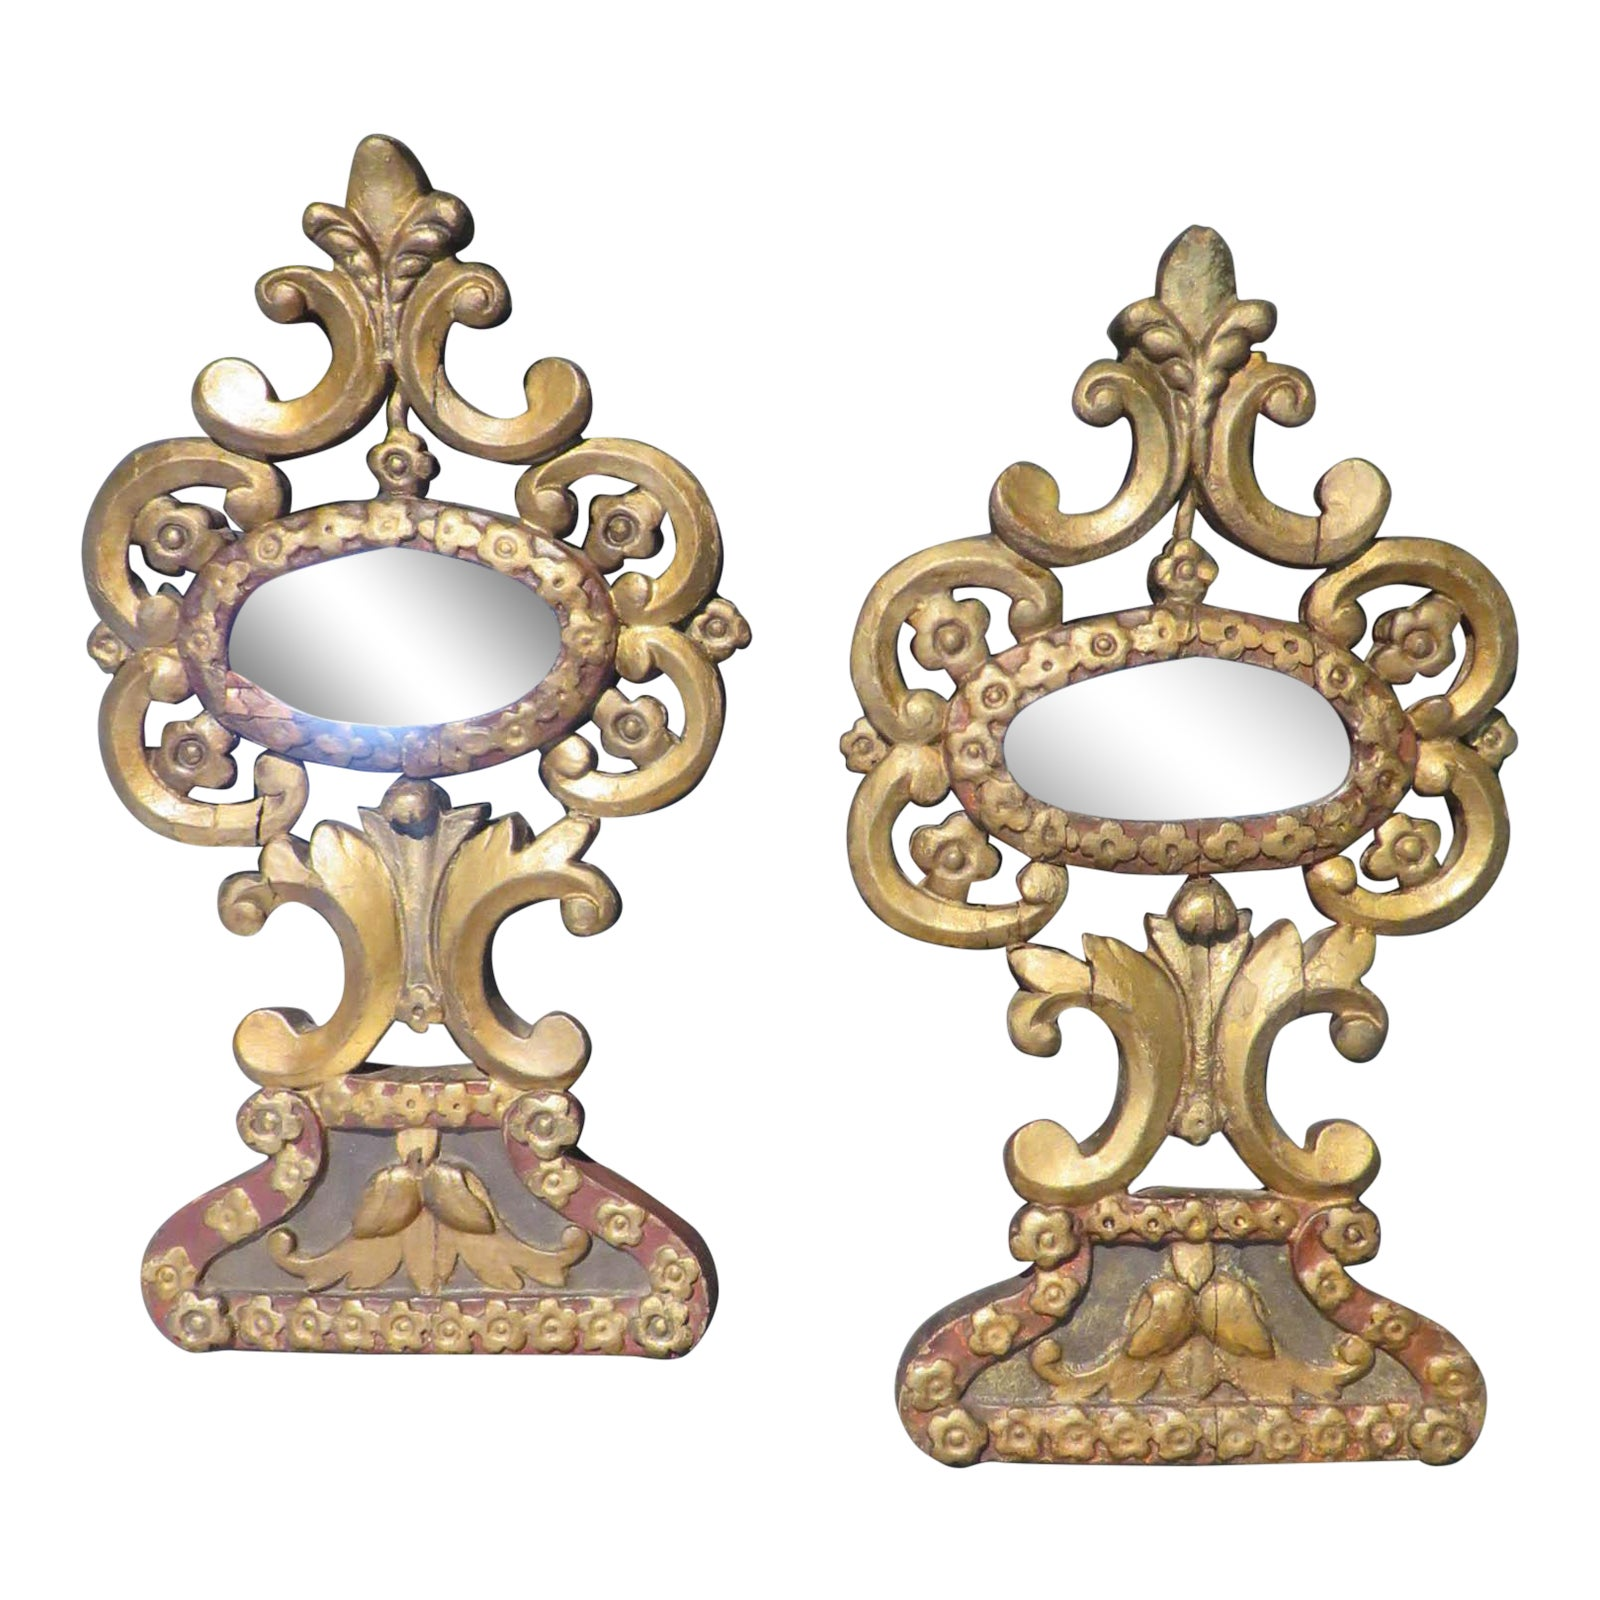 18th Century French Antique Mirrors Gilt Wood Mirrors With Original Glass A Pair Chairish